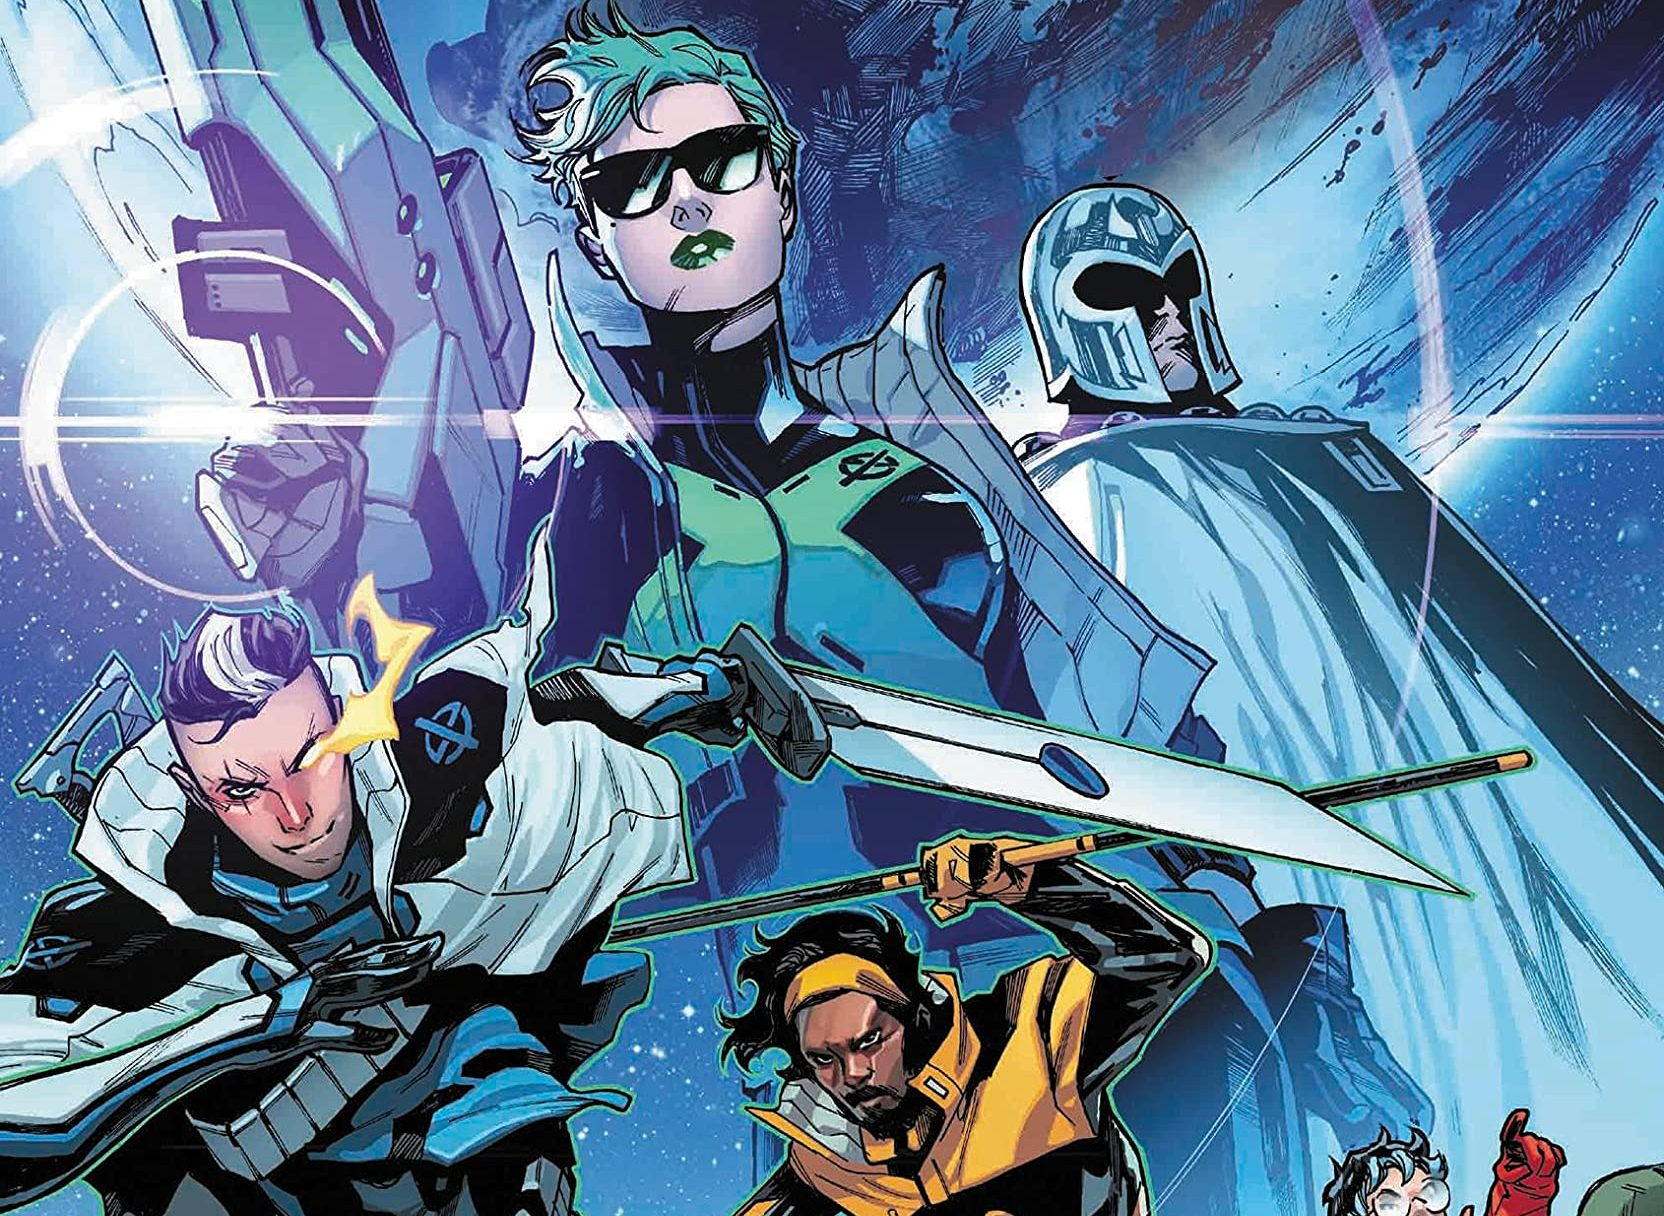 'S.W.O.R.D. by Al Ewing' Vol. 1 is the best X-book since 'House of X/Powers of X'